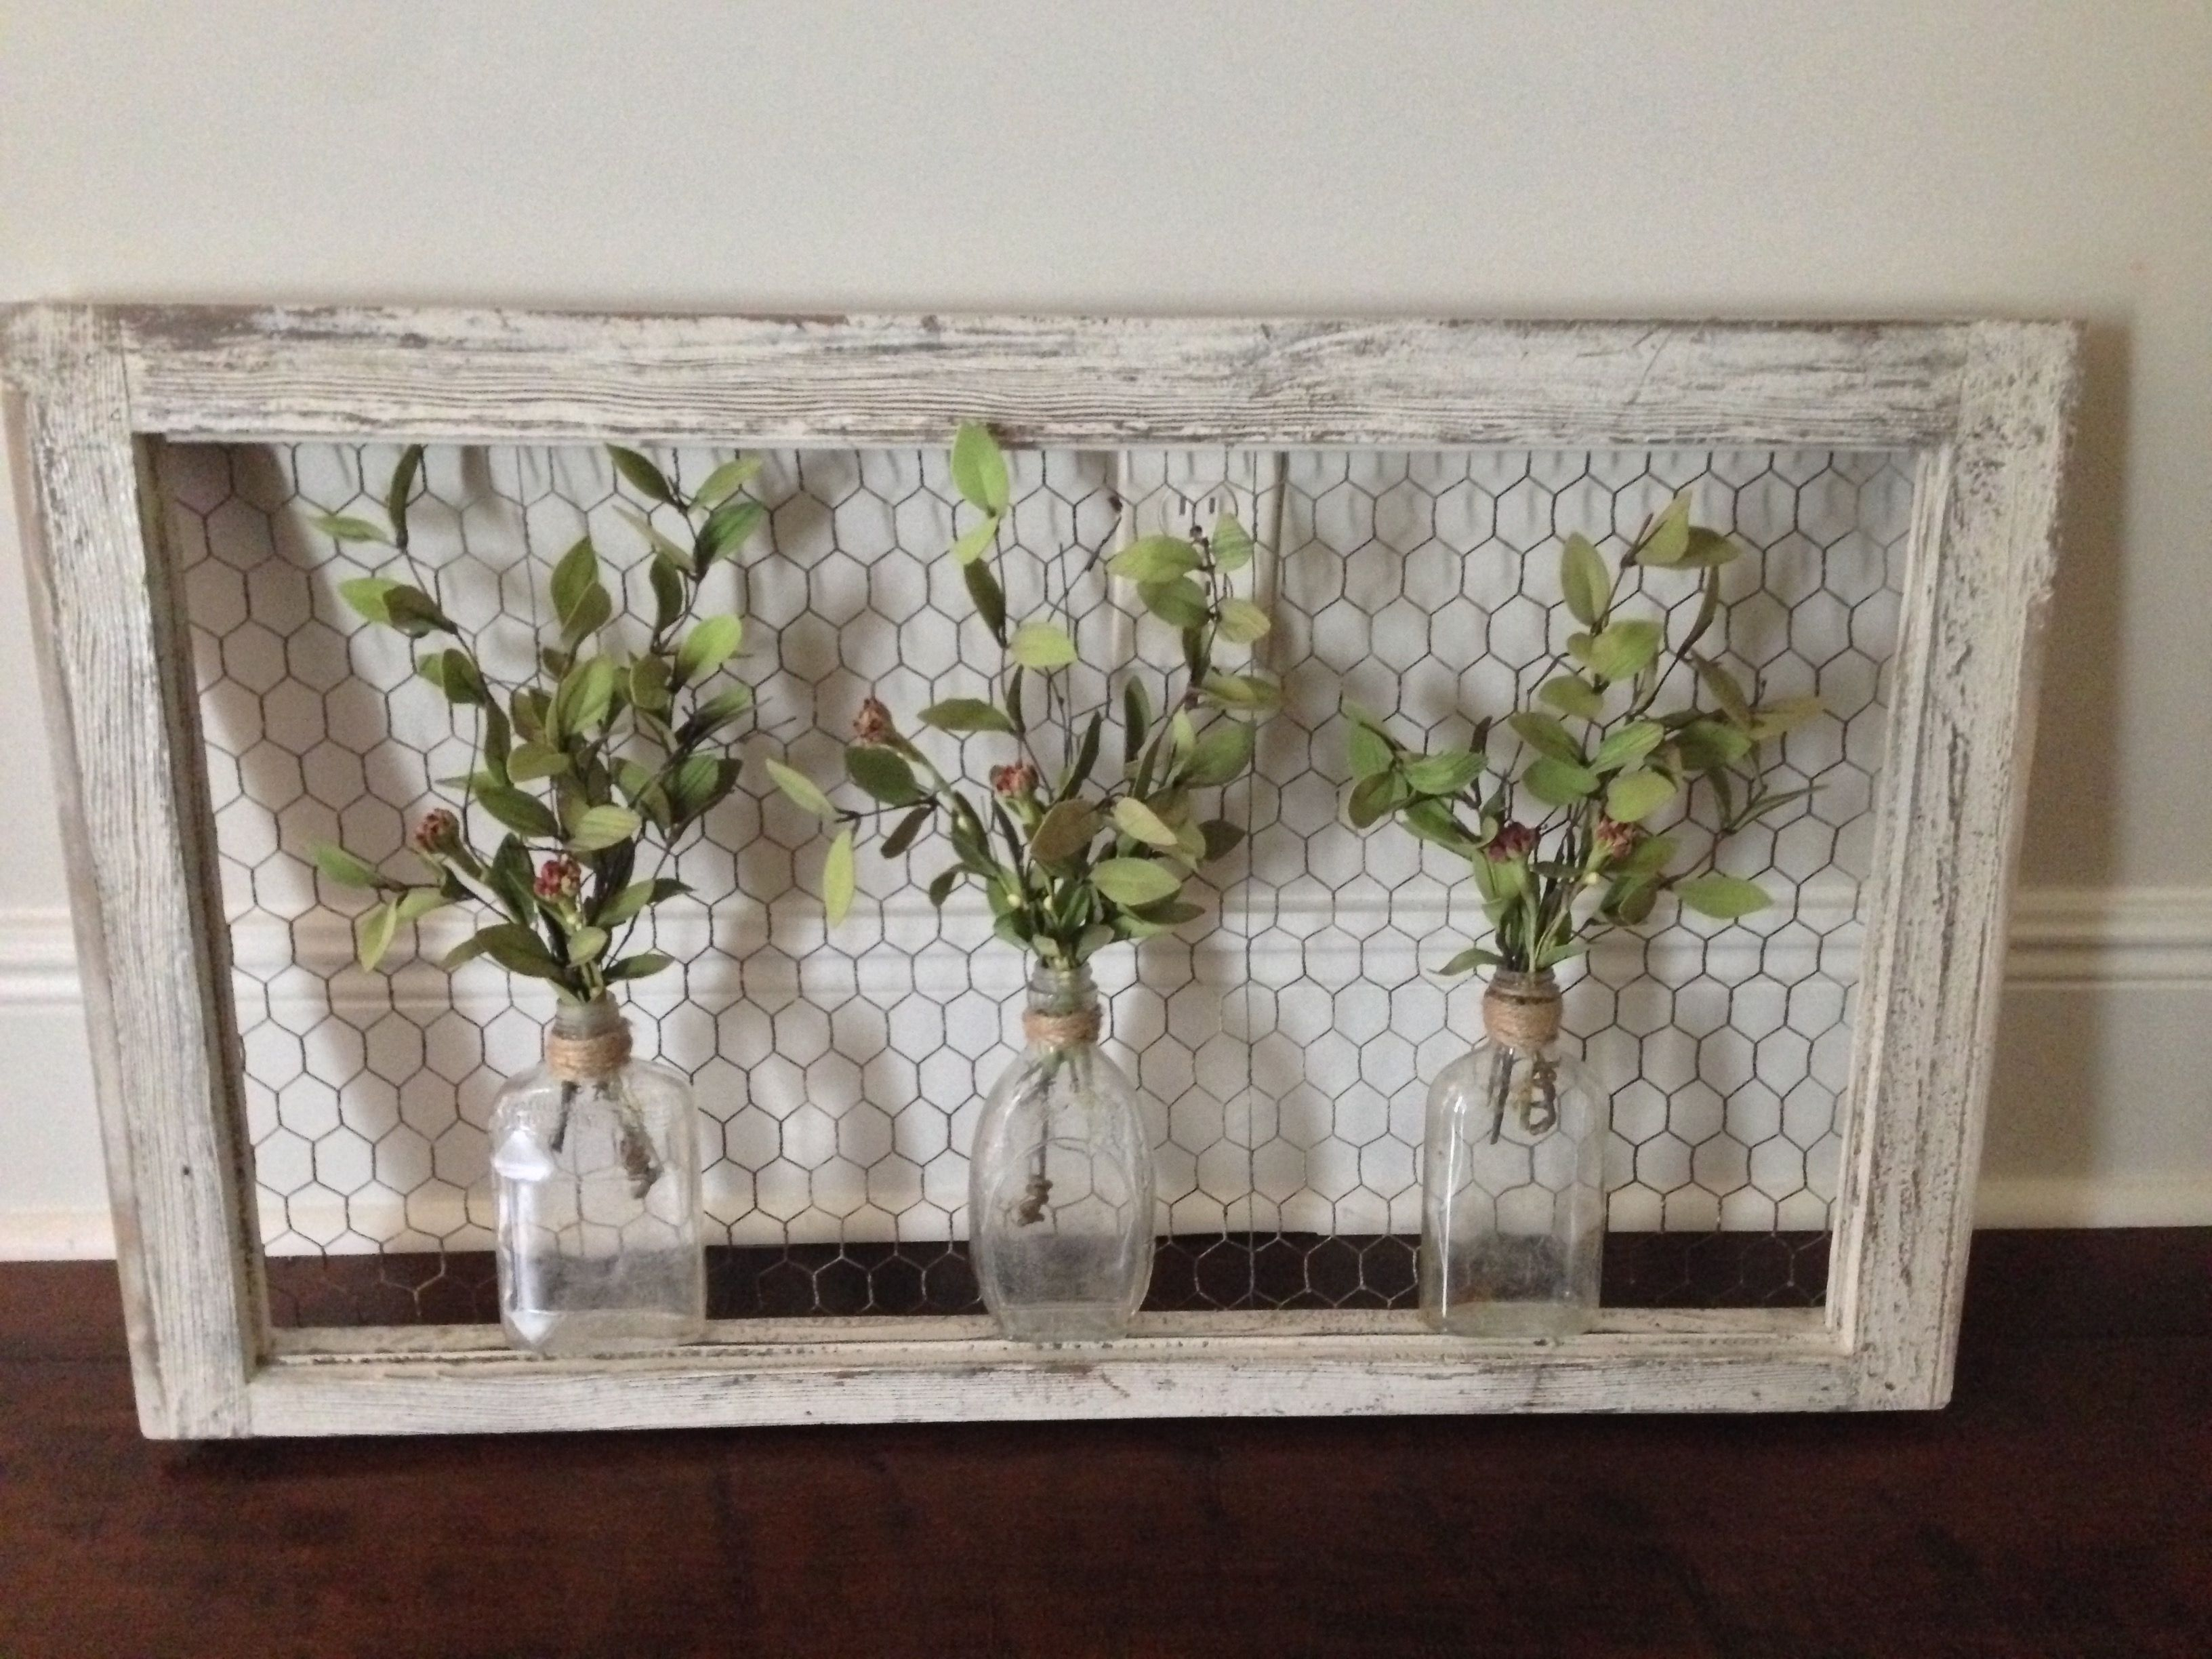 Wall Art: Old Window Frame, Chicken Wire, Old Bottles And Greenery With Regard To Best And Newest Window Frame Wall Art (View 4 of 15)